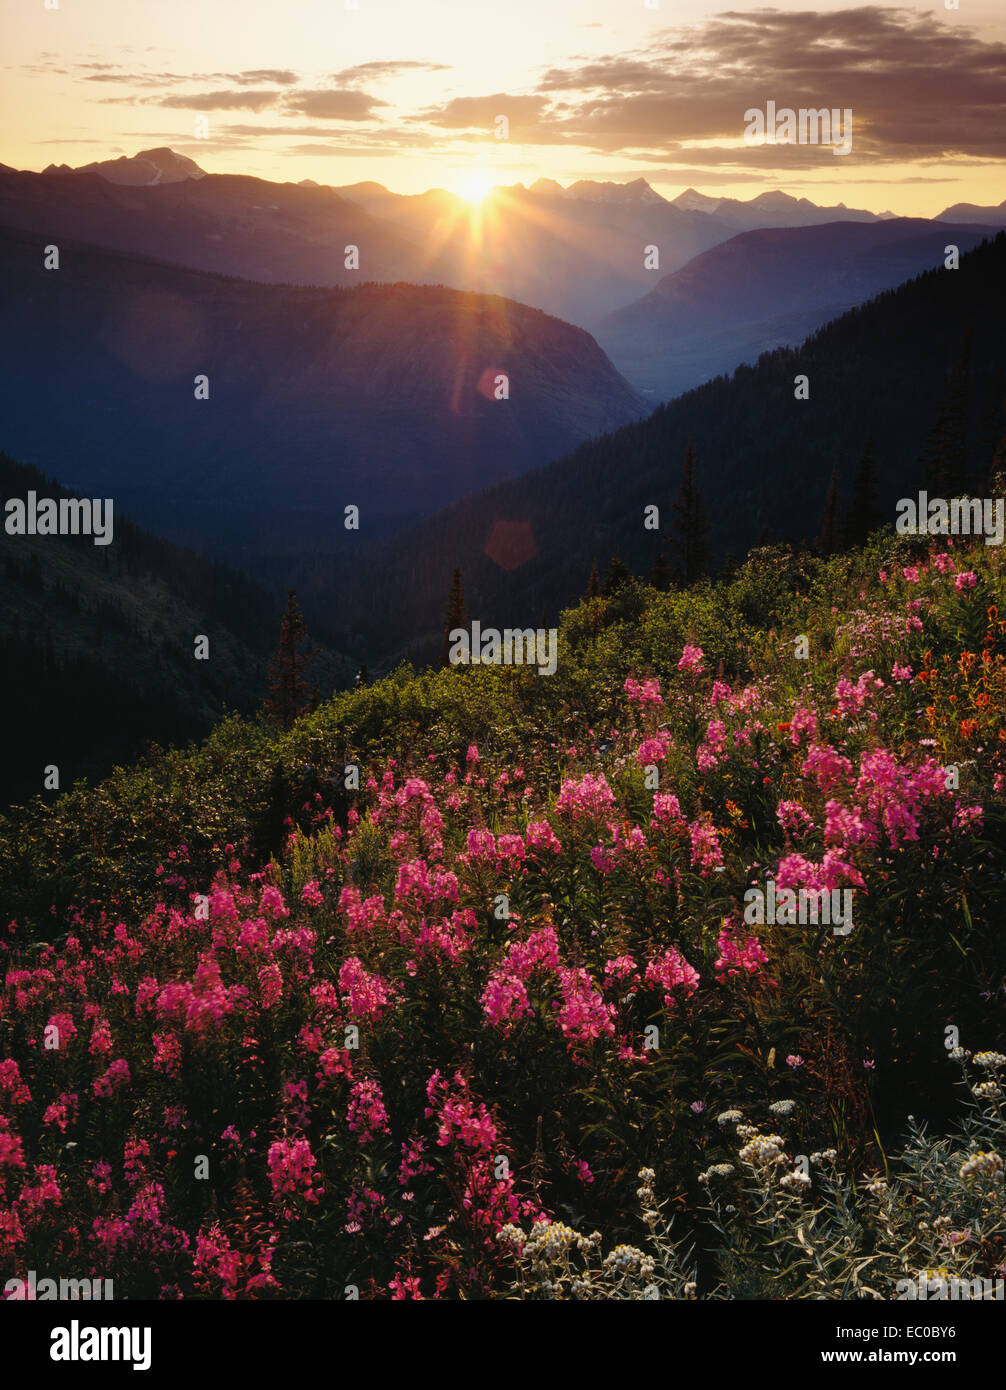 dramatic sunset over mountains with red fireweed in foreground. Glacier National Park, Montana - Stock Image